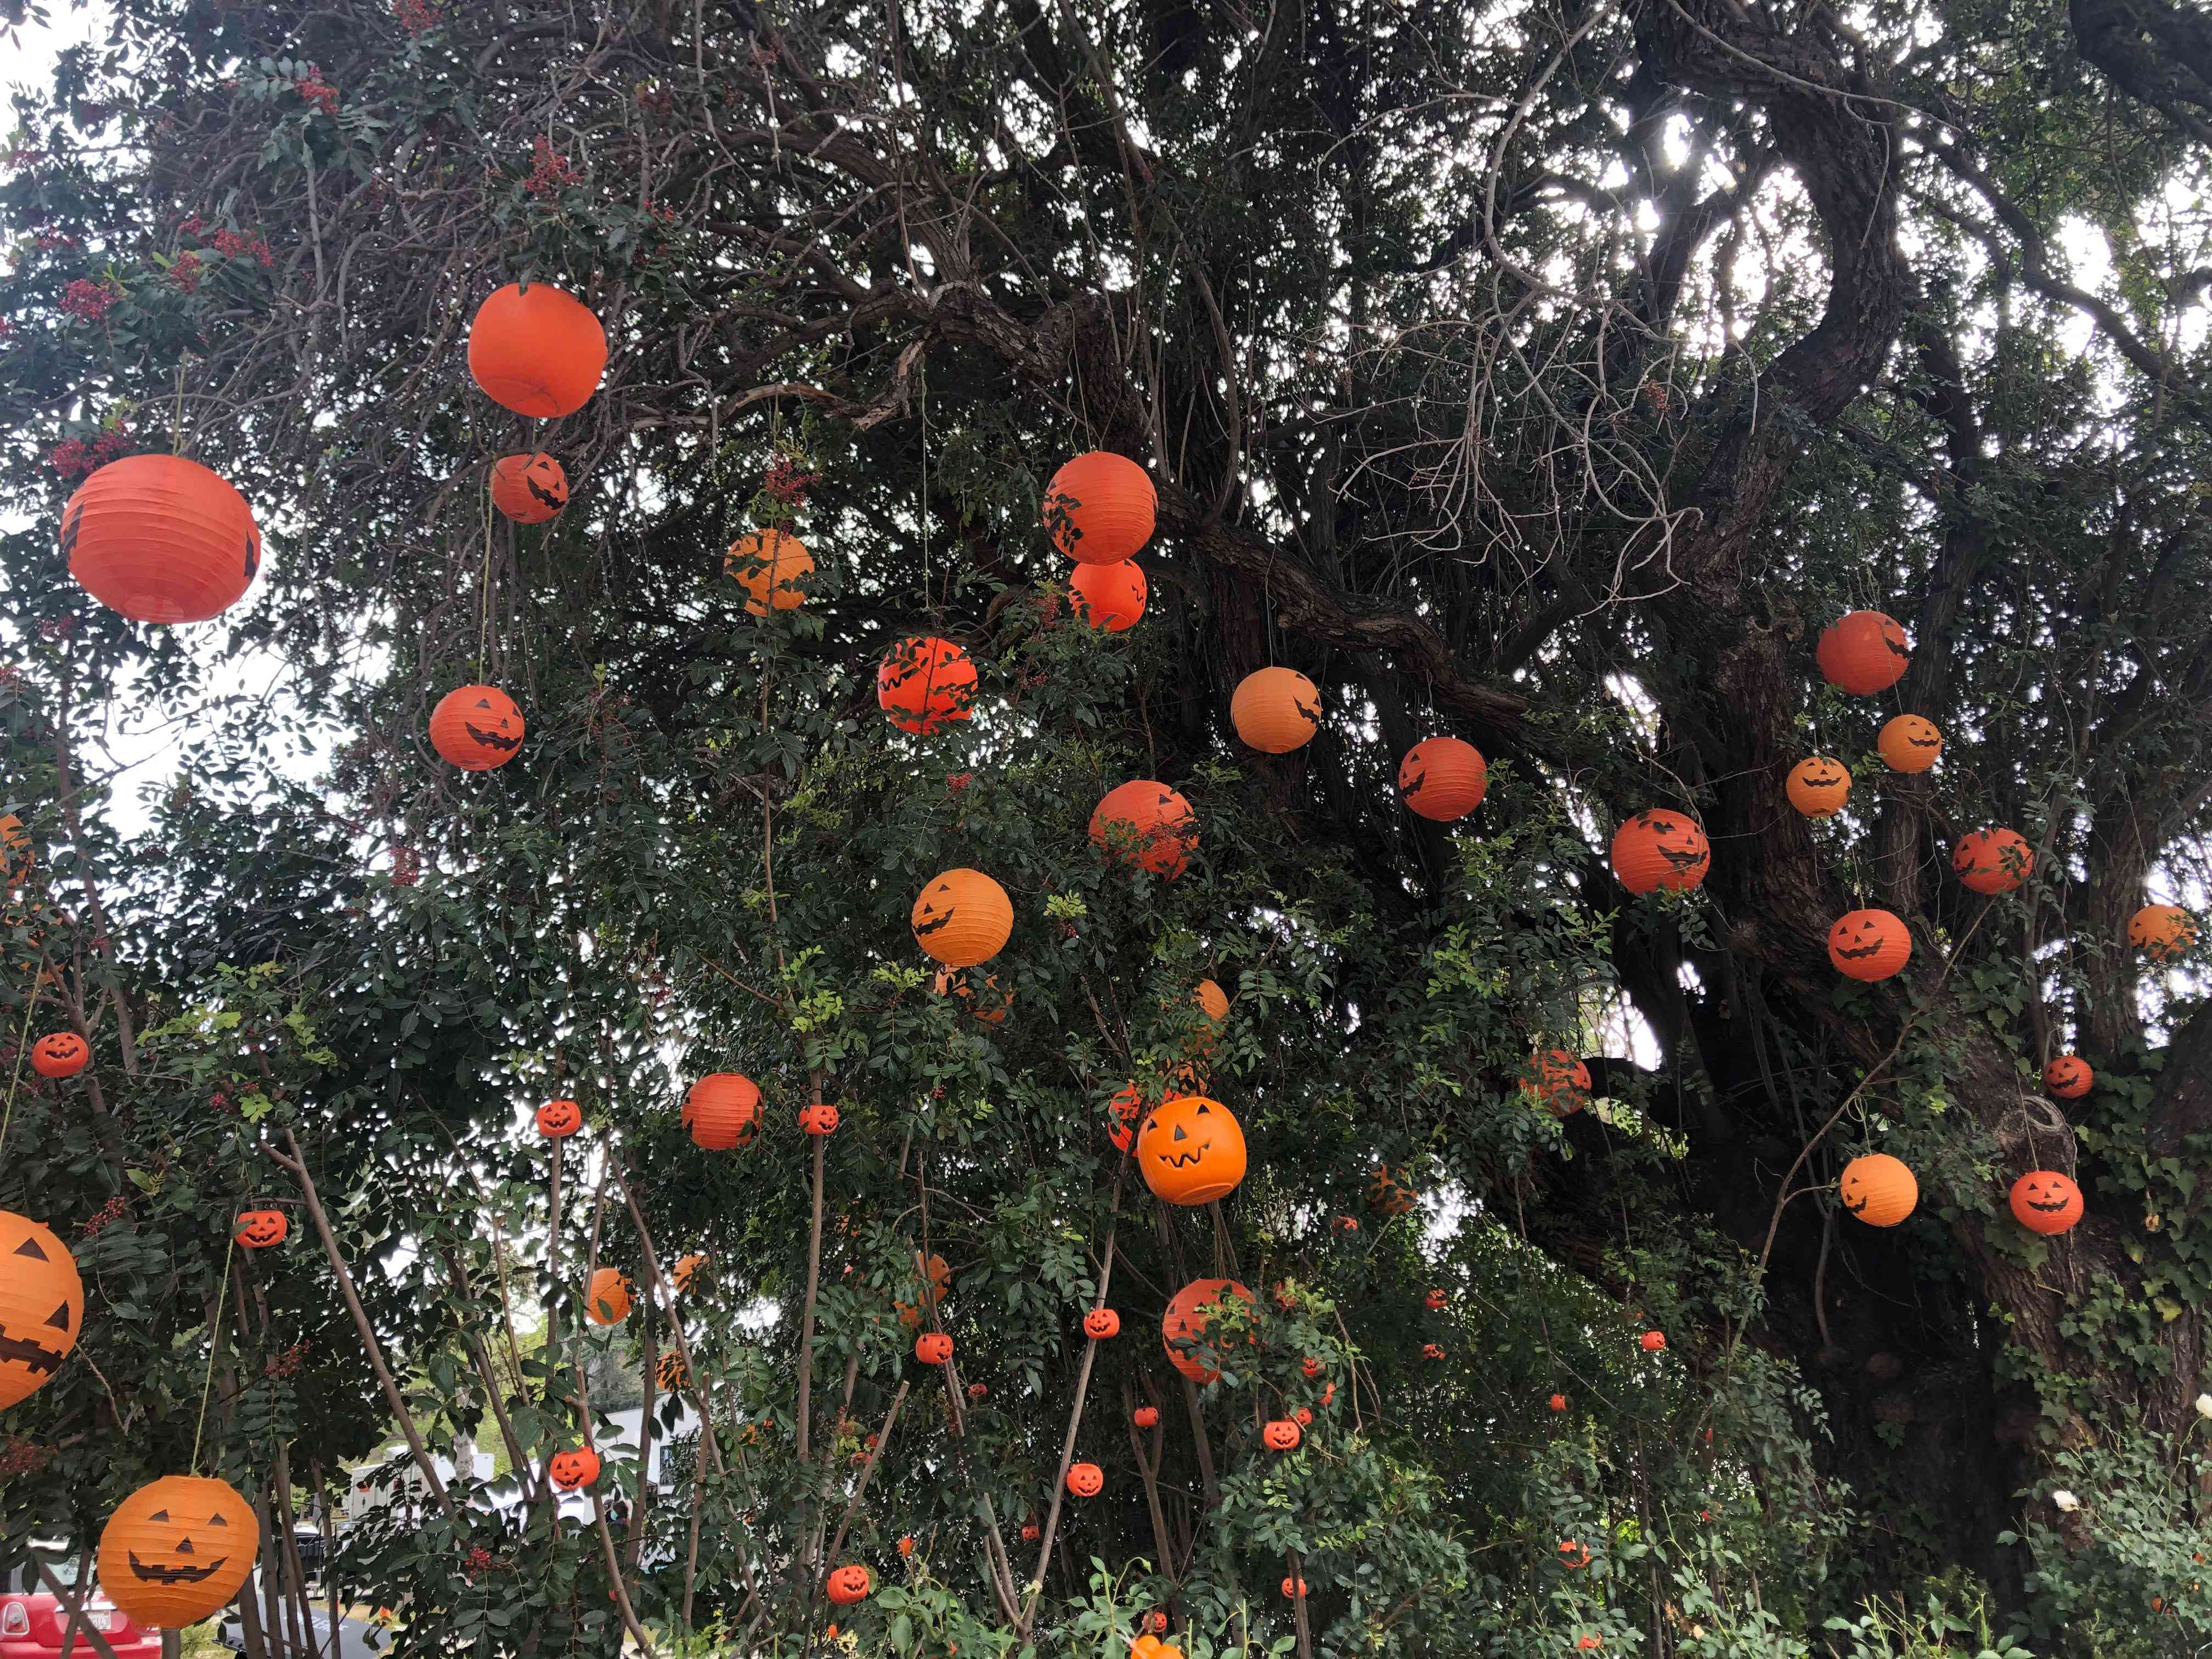 Jack-o'-lanterns in trees from a set for